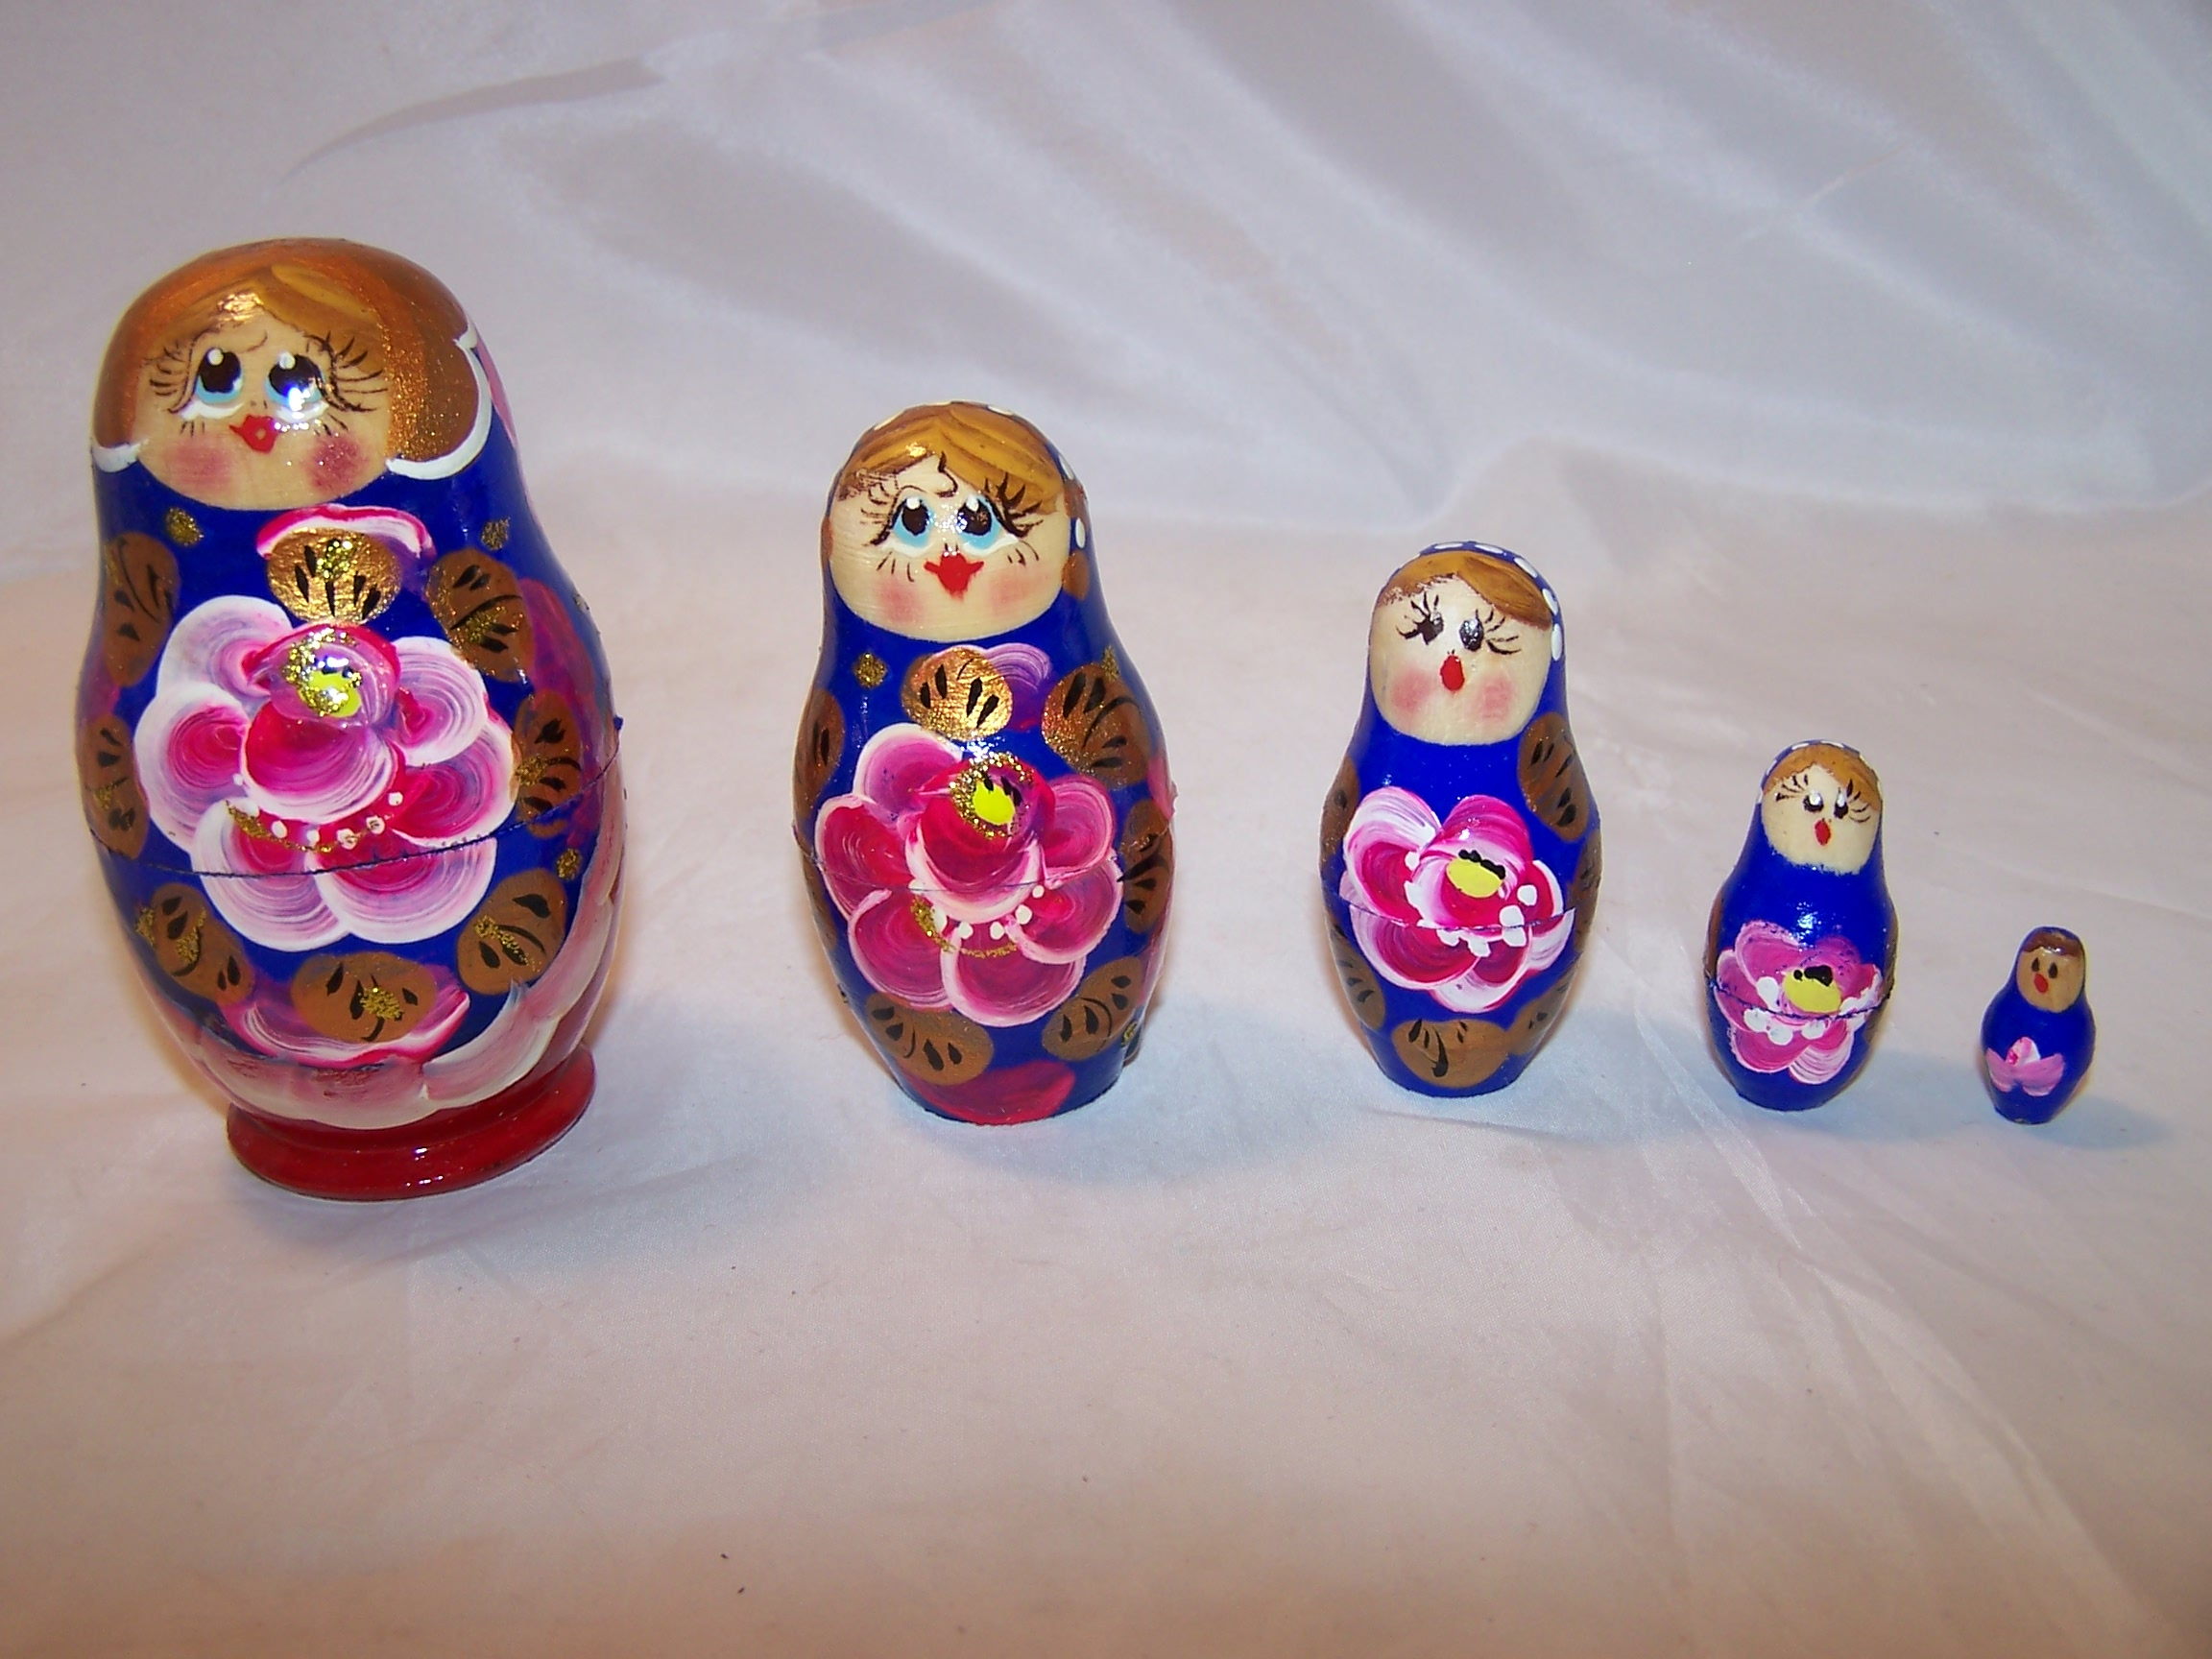 Nesting Doll in Blue, Gold, Pink, 5 Levels, Wood